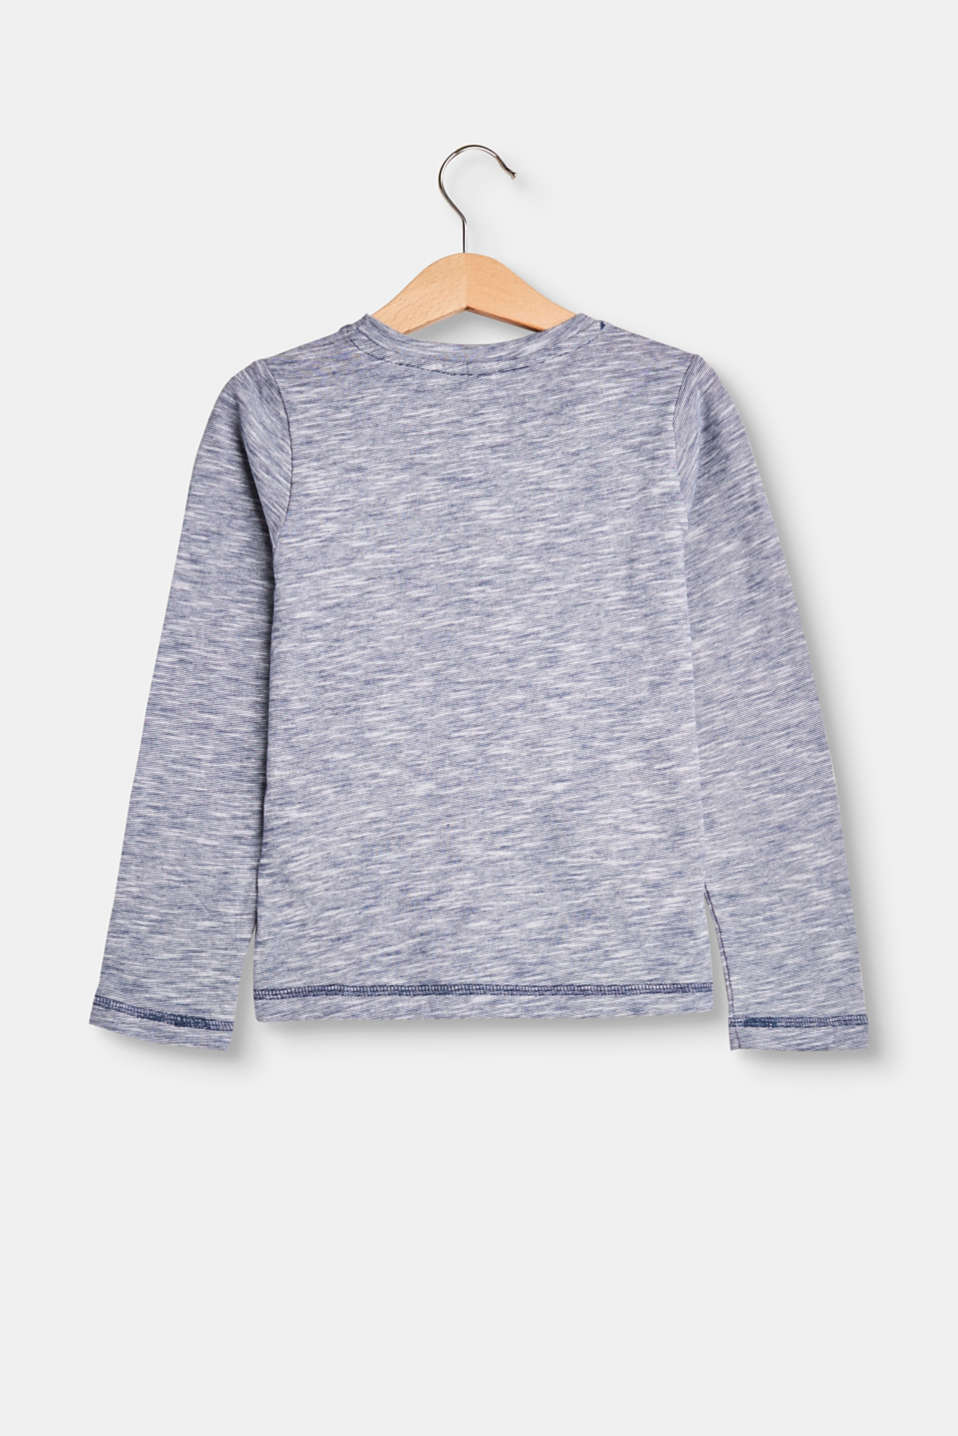 Melange long sleeve top in 100% cotton